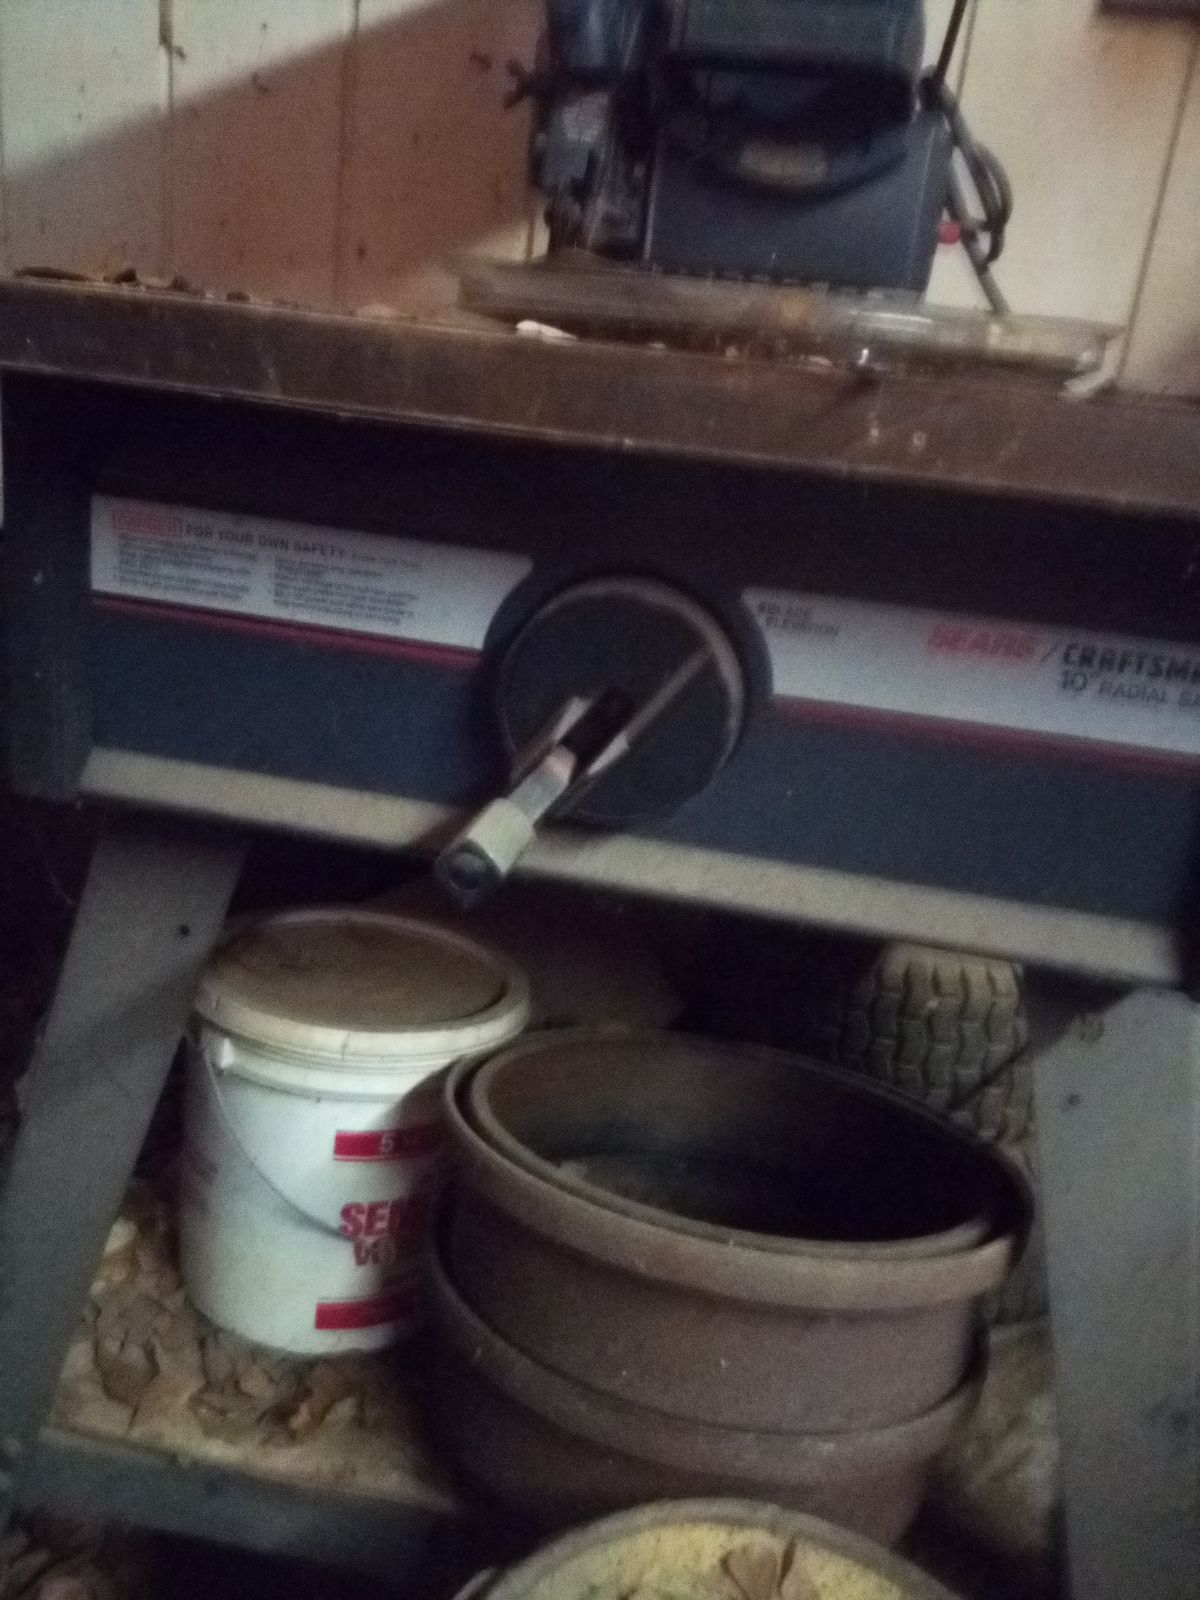 Works Good Just Needs Cleaning This Is The Newer Of The Two Radial Arm Saws I Have By Craftsman Craftsman Tools Radial Arm Saw Tools And Equipment